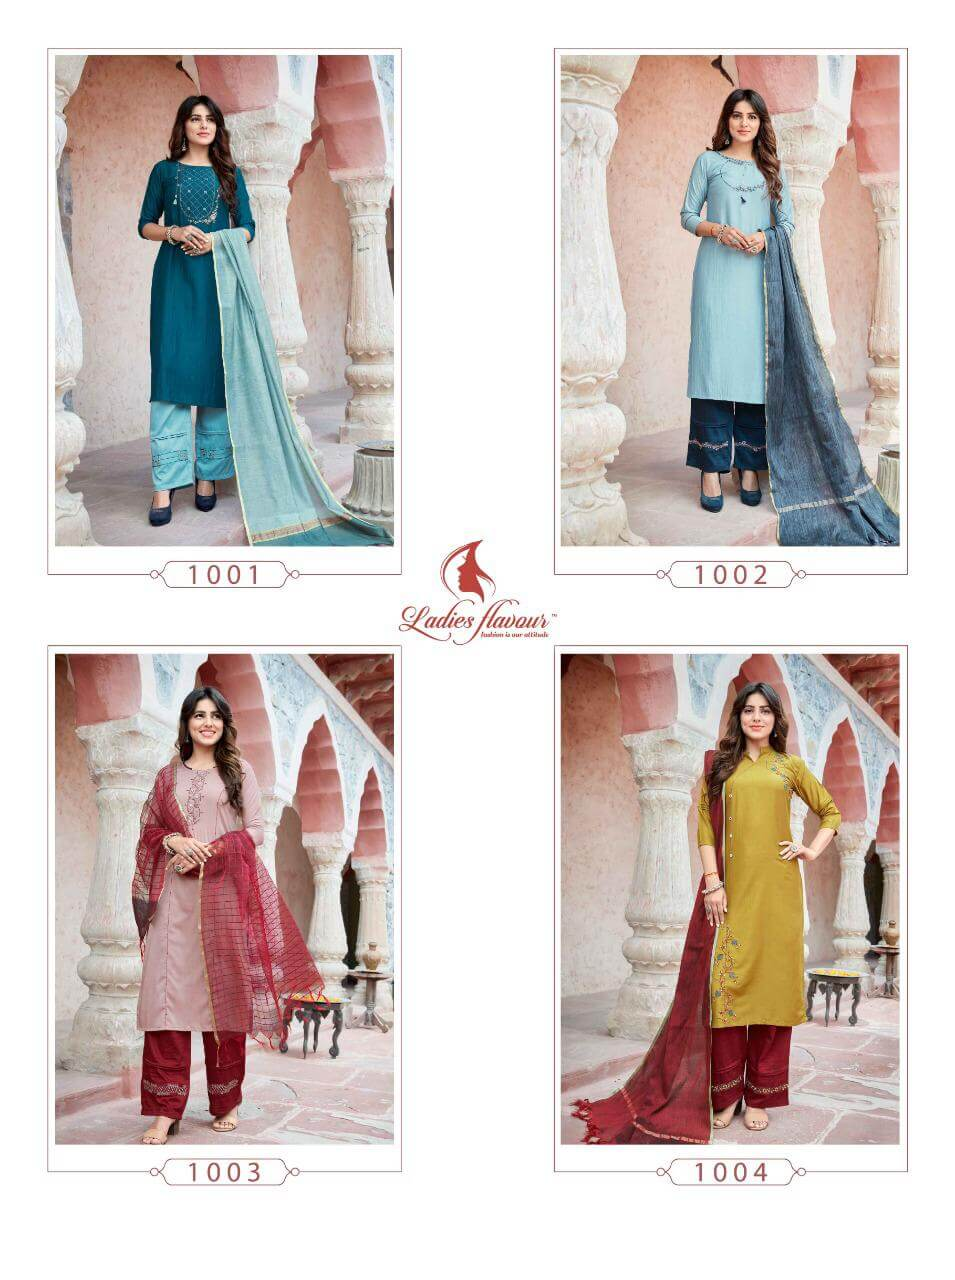 Ladies Flavour Aarohi Vol 2 collection 11